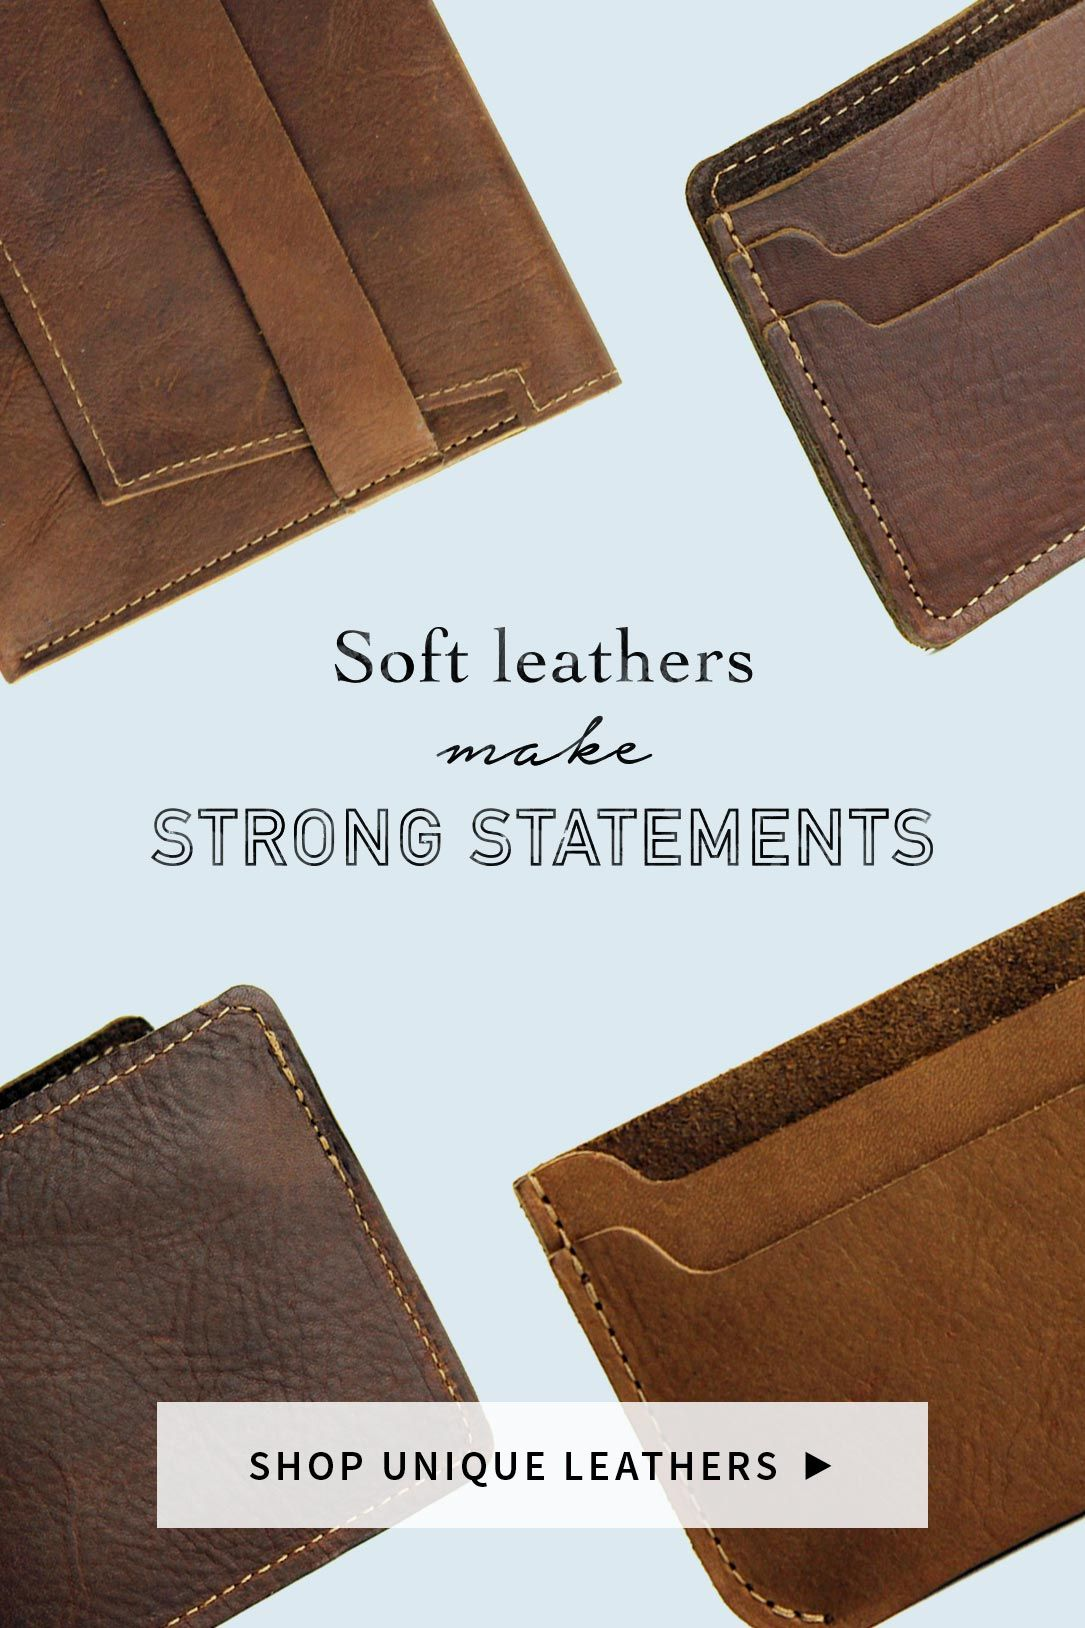 Shop Our Unique Leathers Collection